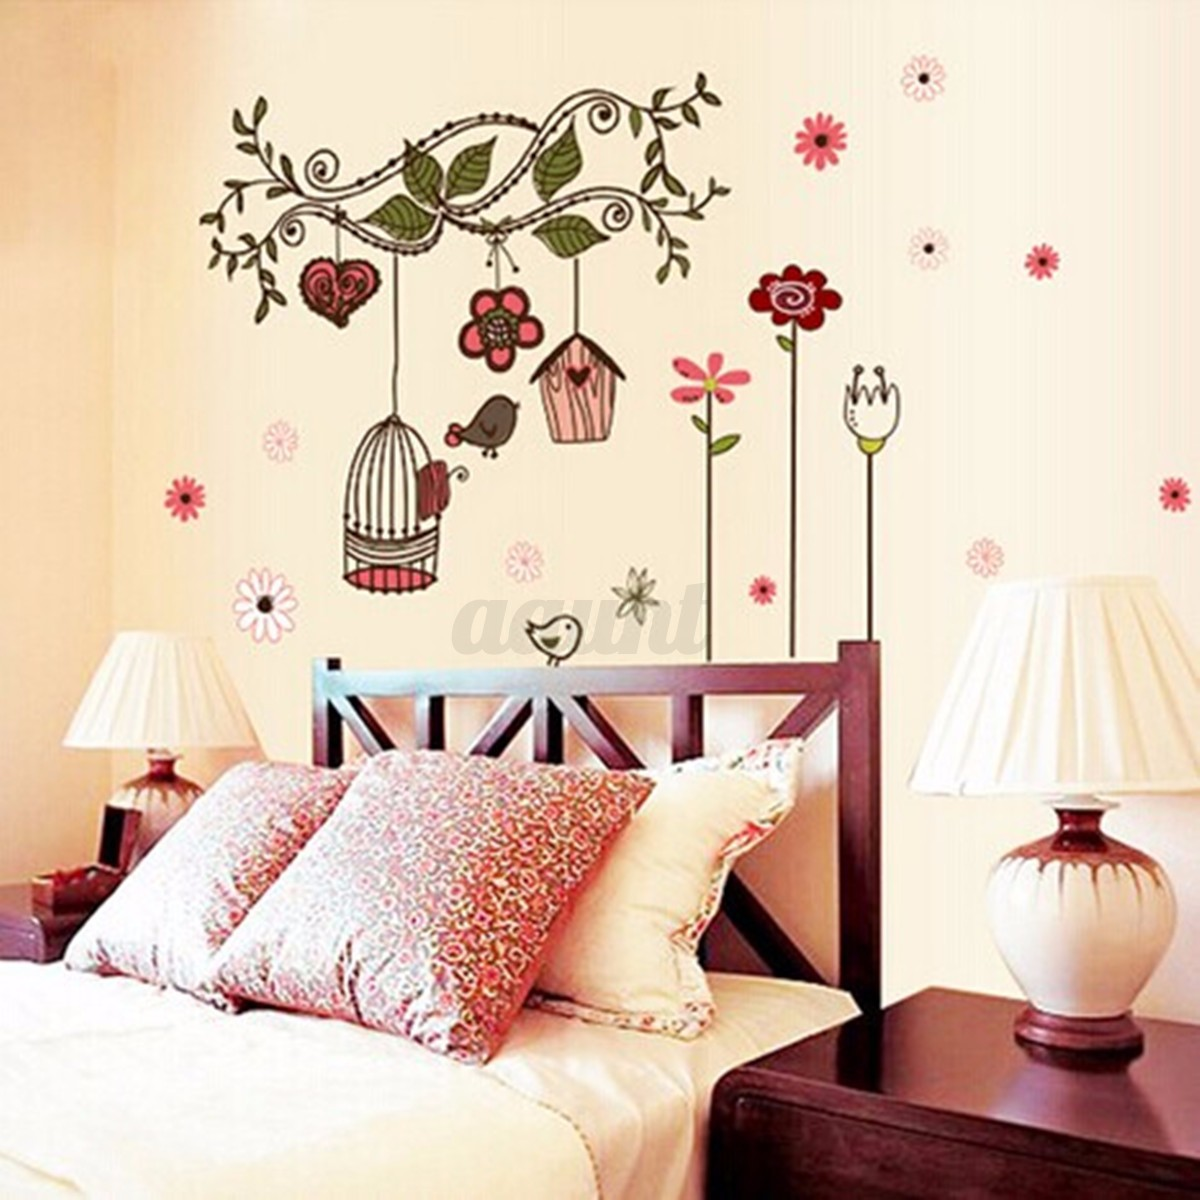 Diy removable tree wall decals kids bedroom baby nursery - Childrens bedroom wall stickers removable ...